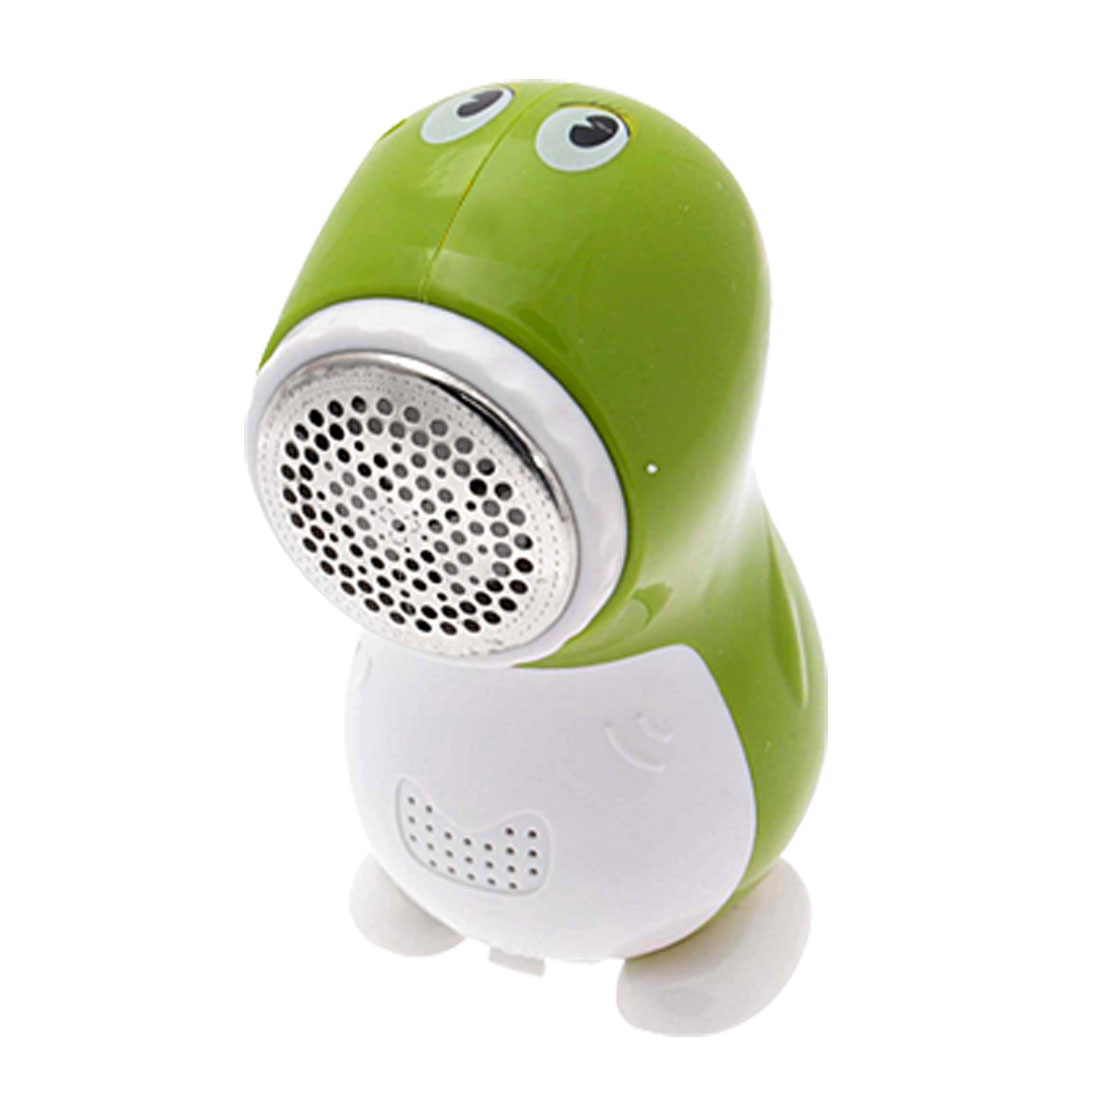 Lint Fuzz Pill Remover Clothes Fabric Sweater Shaver - Green Frog (BWG-2229)